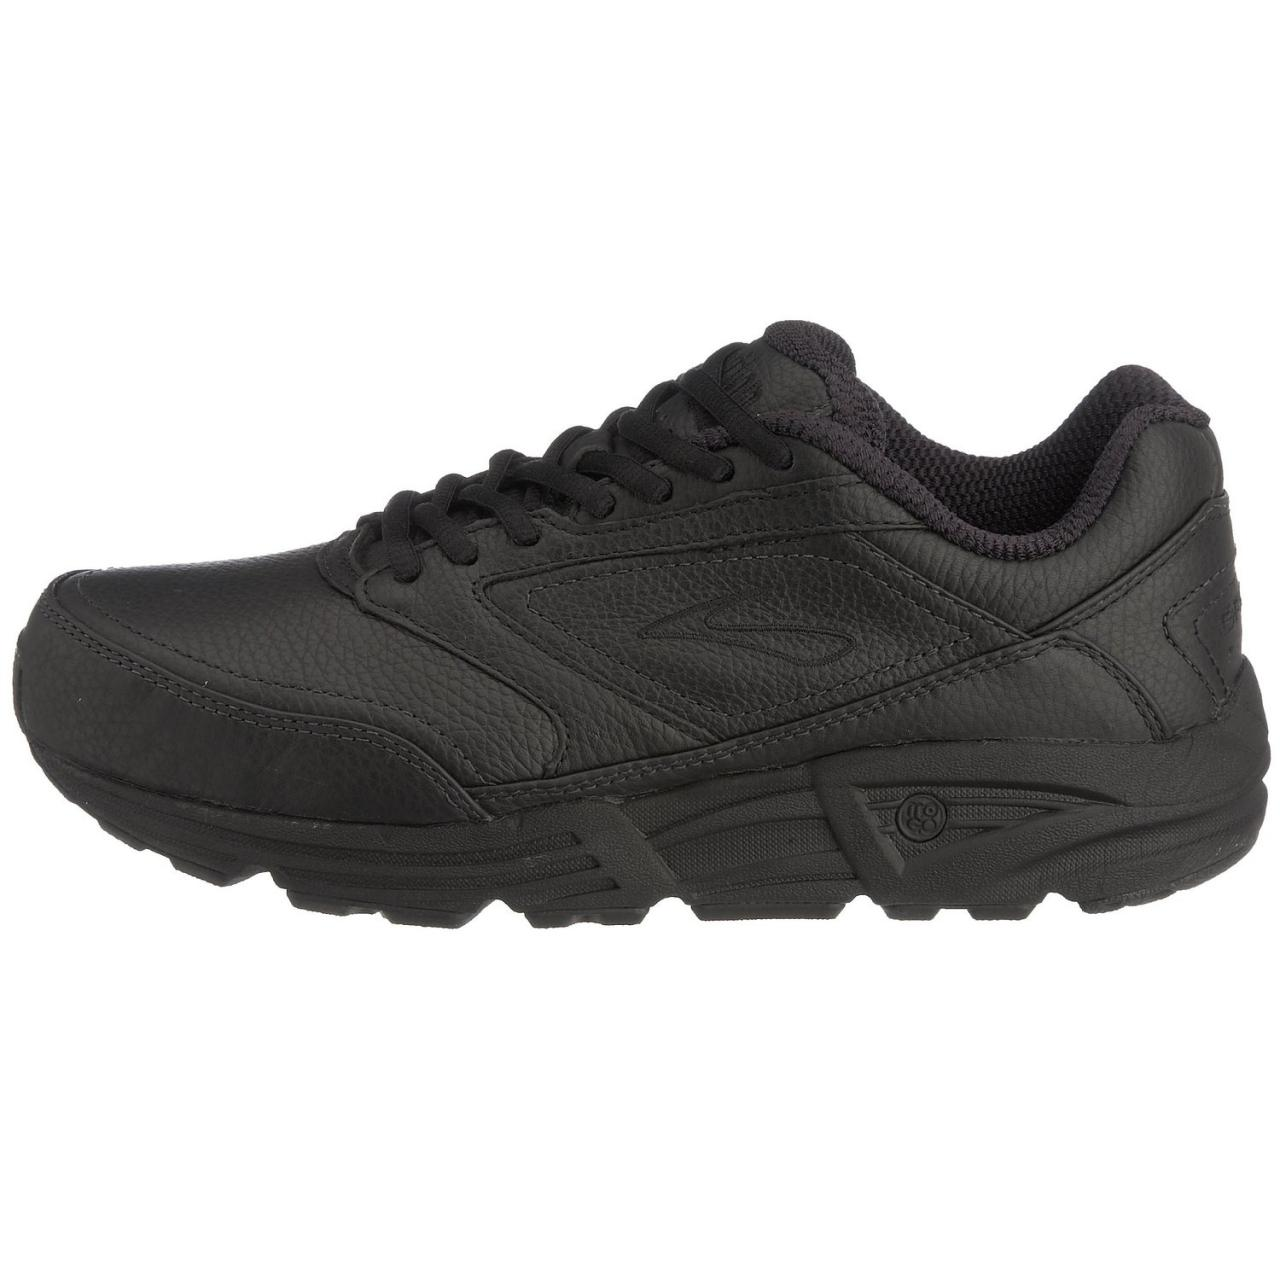 Top 10 Best/Most Comfortable Walking Shoes for Men